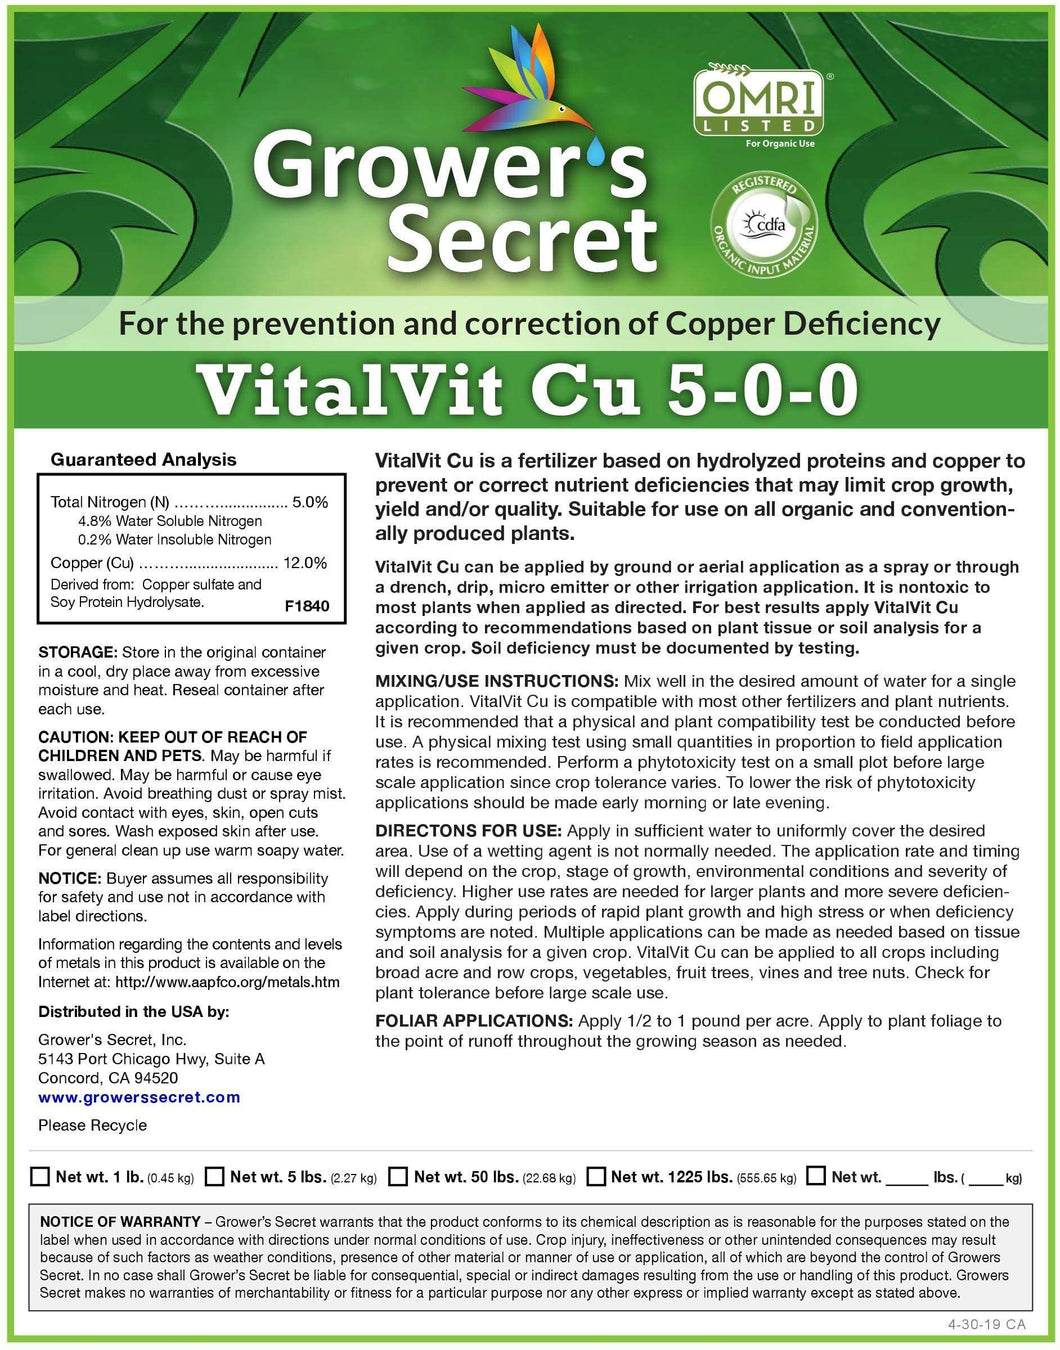 Growers Secret Grower's Secret VitalVit Cu 5-0-0 Copper